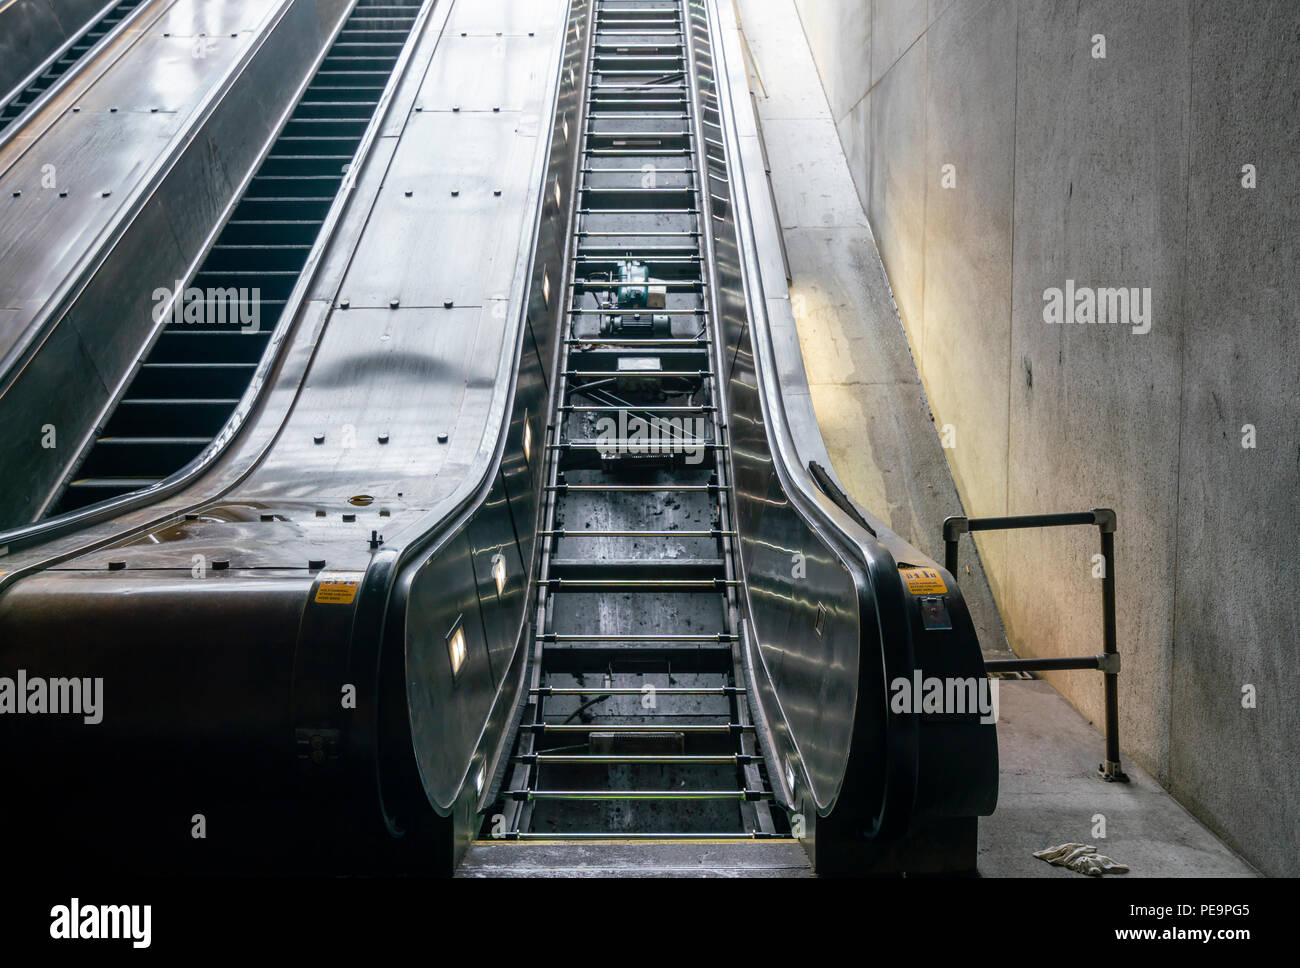 Escalator in a train station under repair - Stock Image